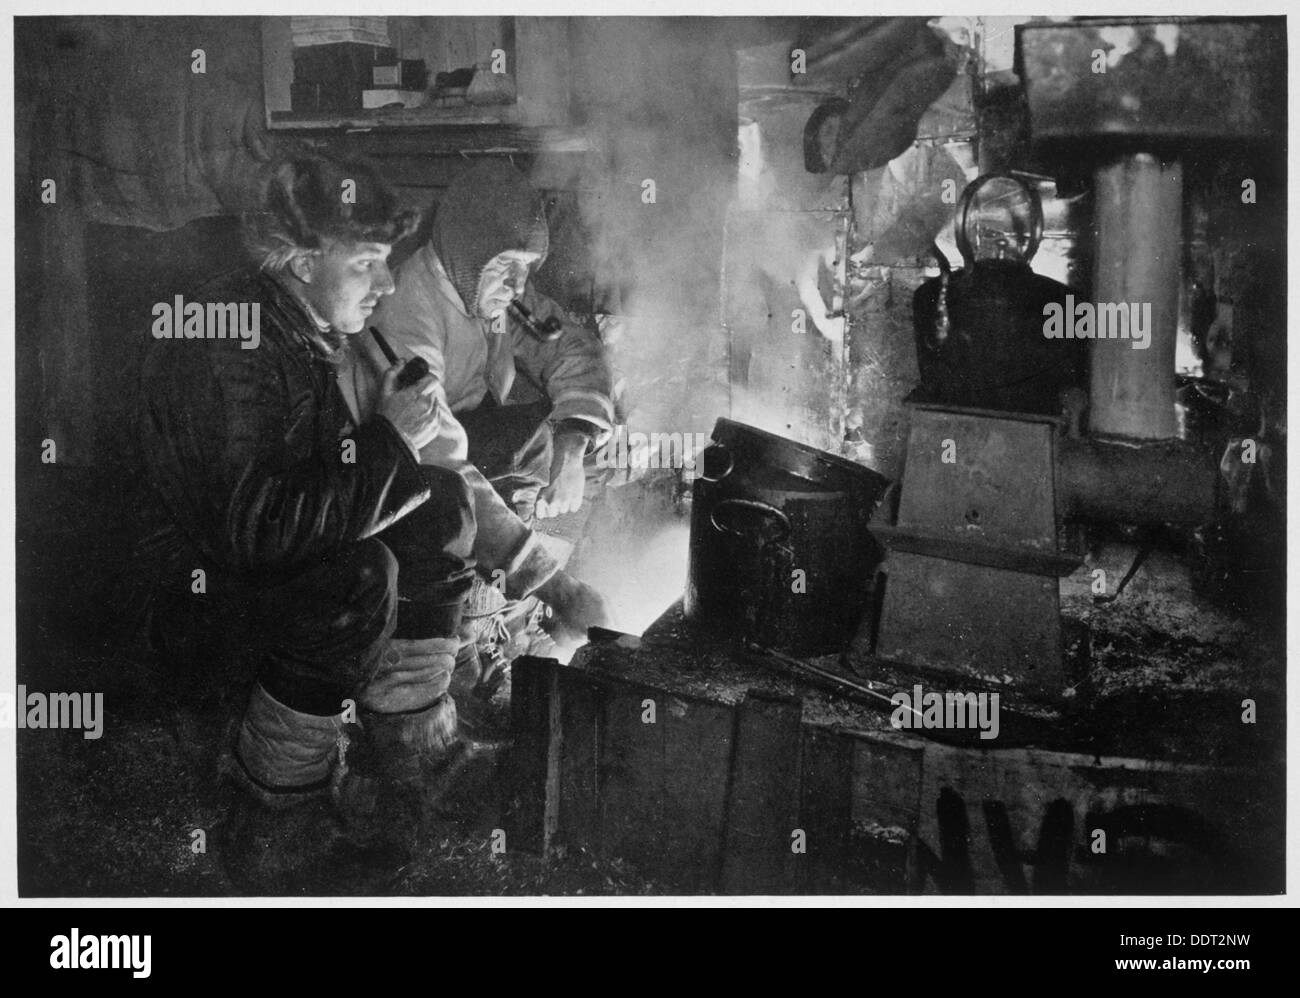 'Oates and Meares at the Blubber Stove in the Stables', Antarctica, 1911. Artist: Herbert Ponting - Stock Image